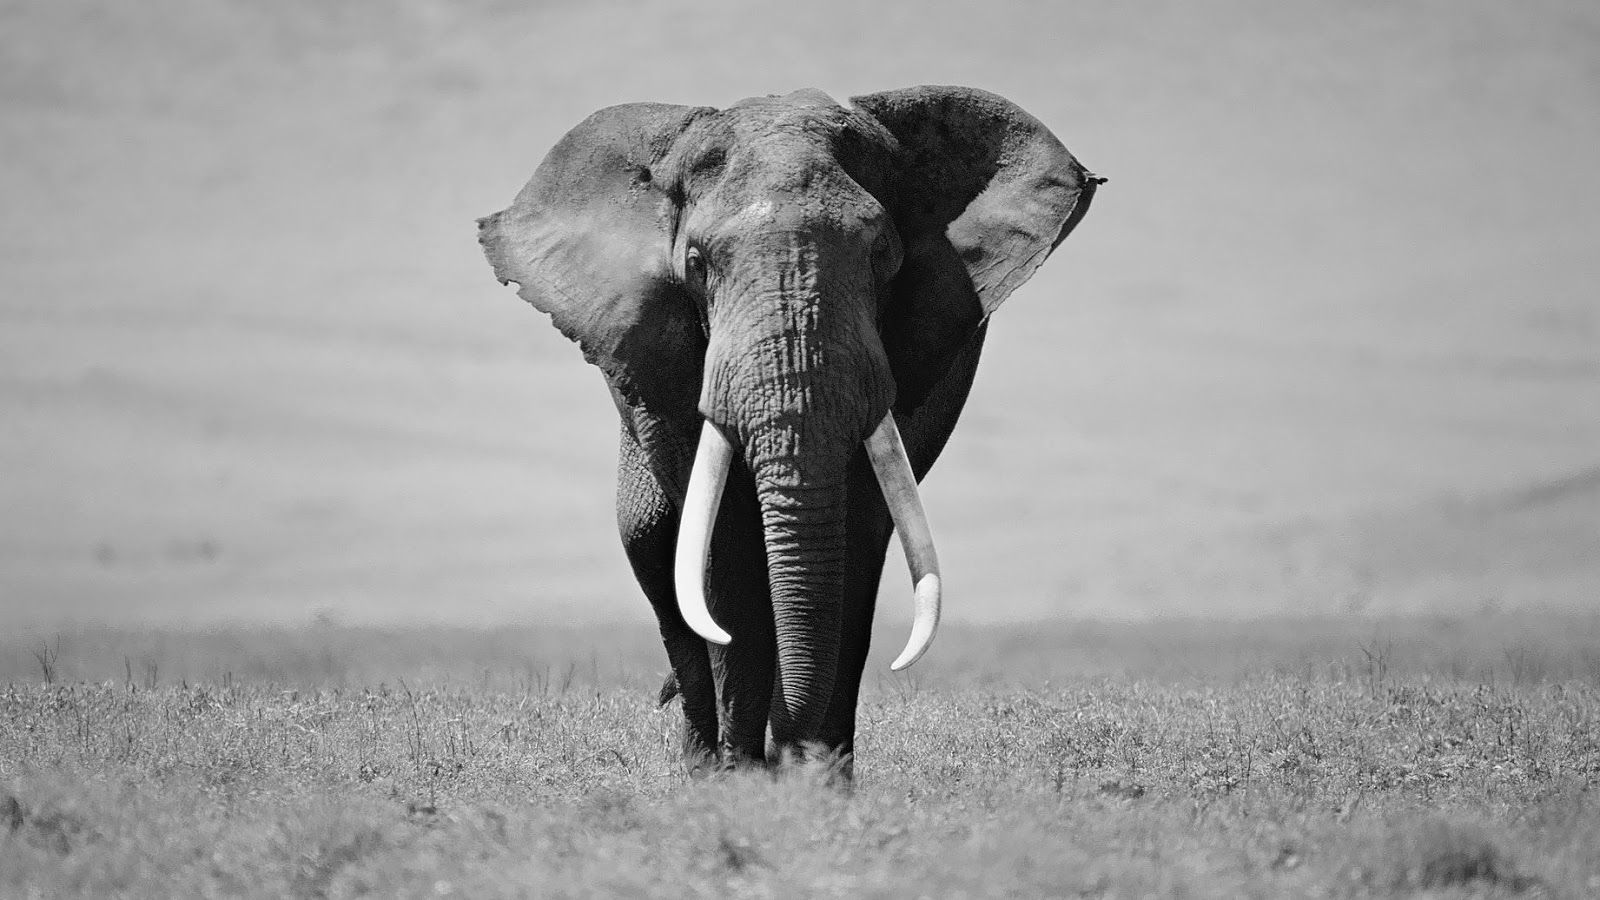 Elephant Black And White Wallpaper Phone Elephant